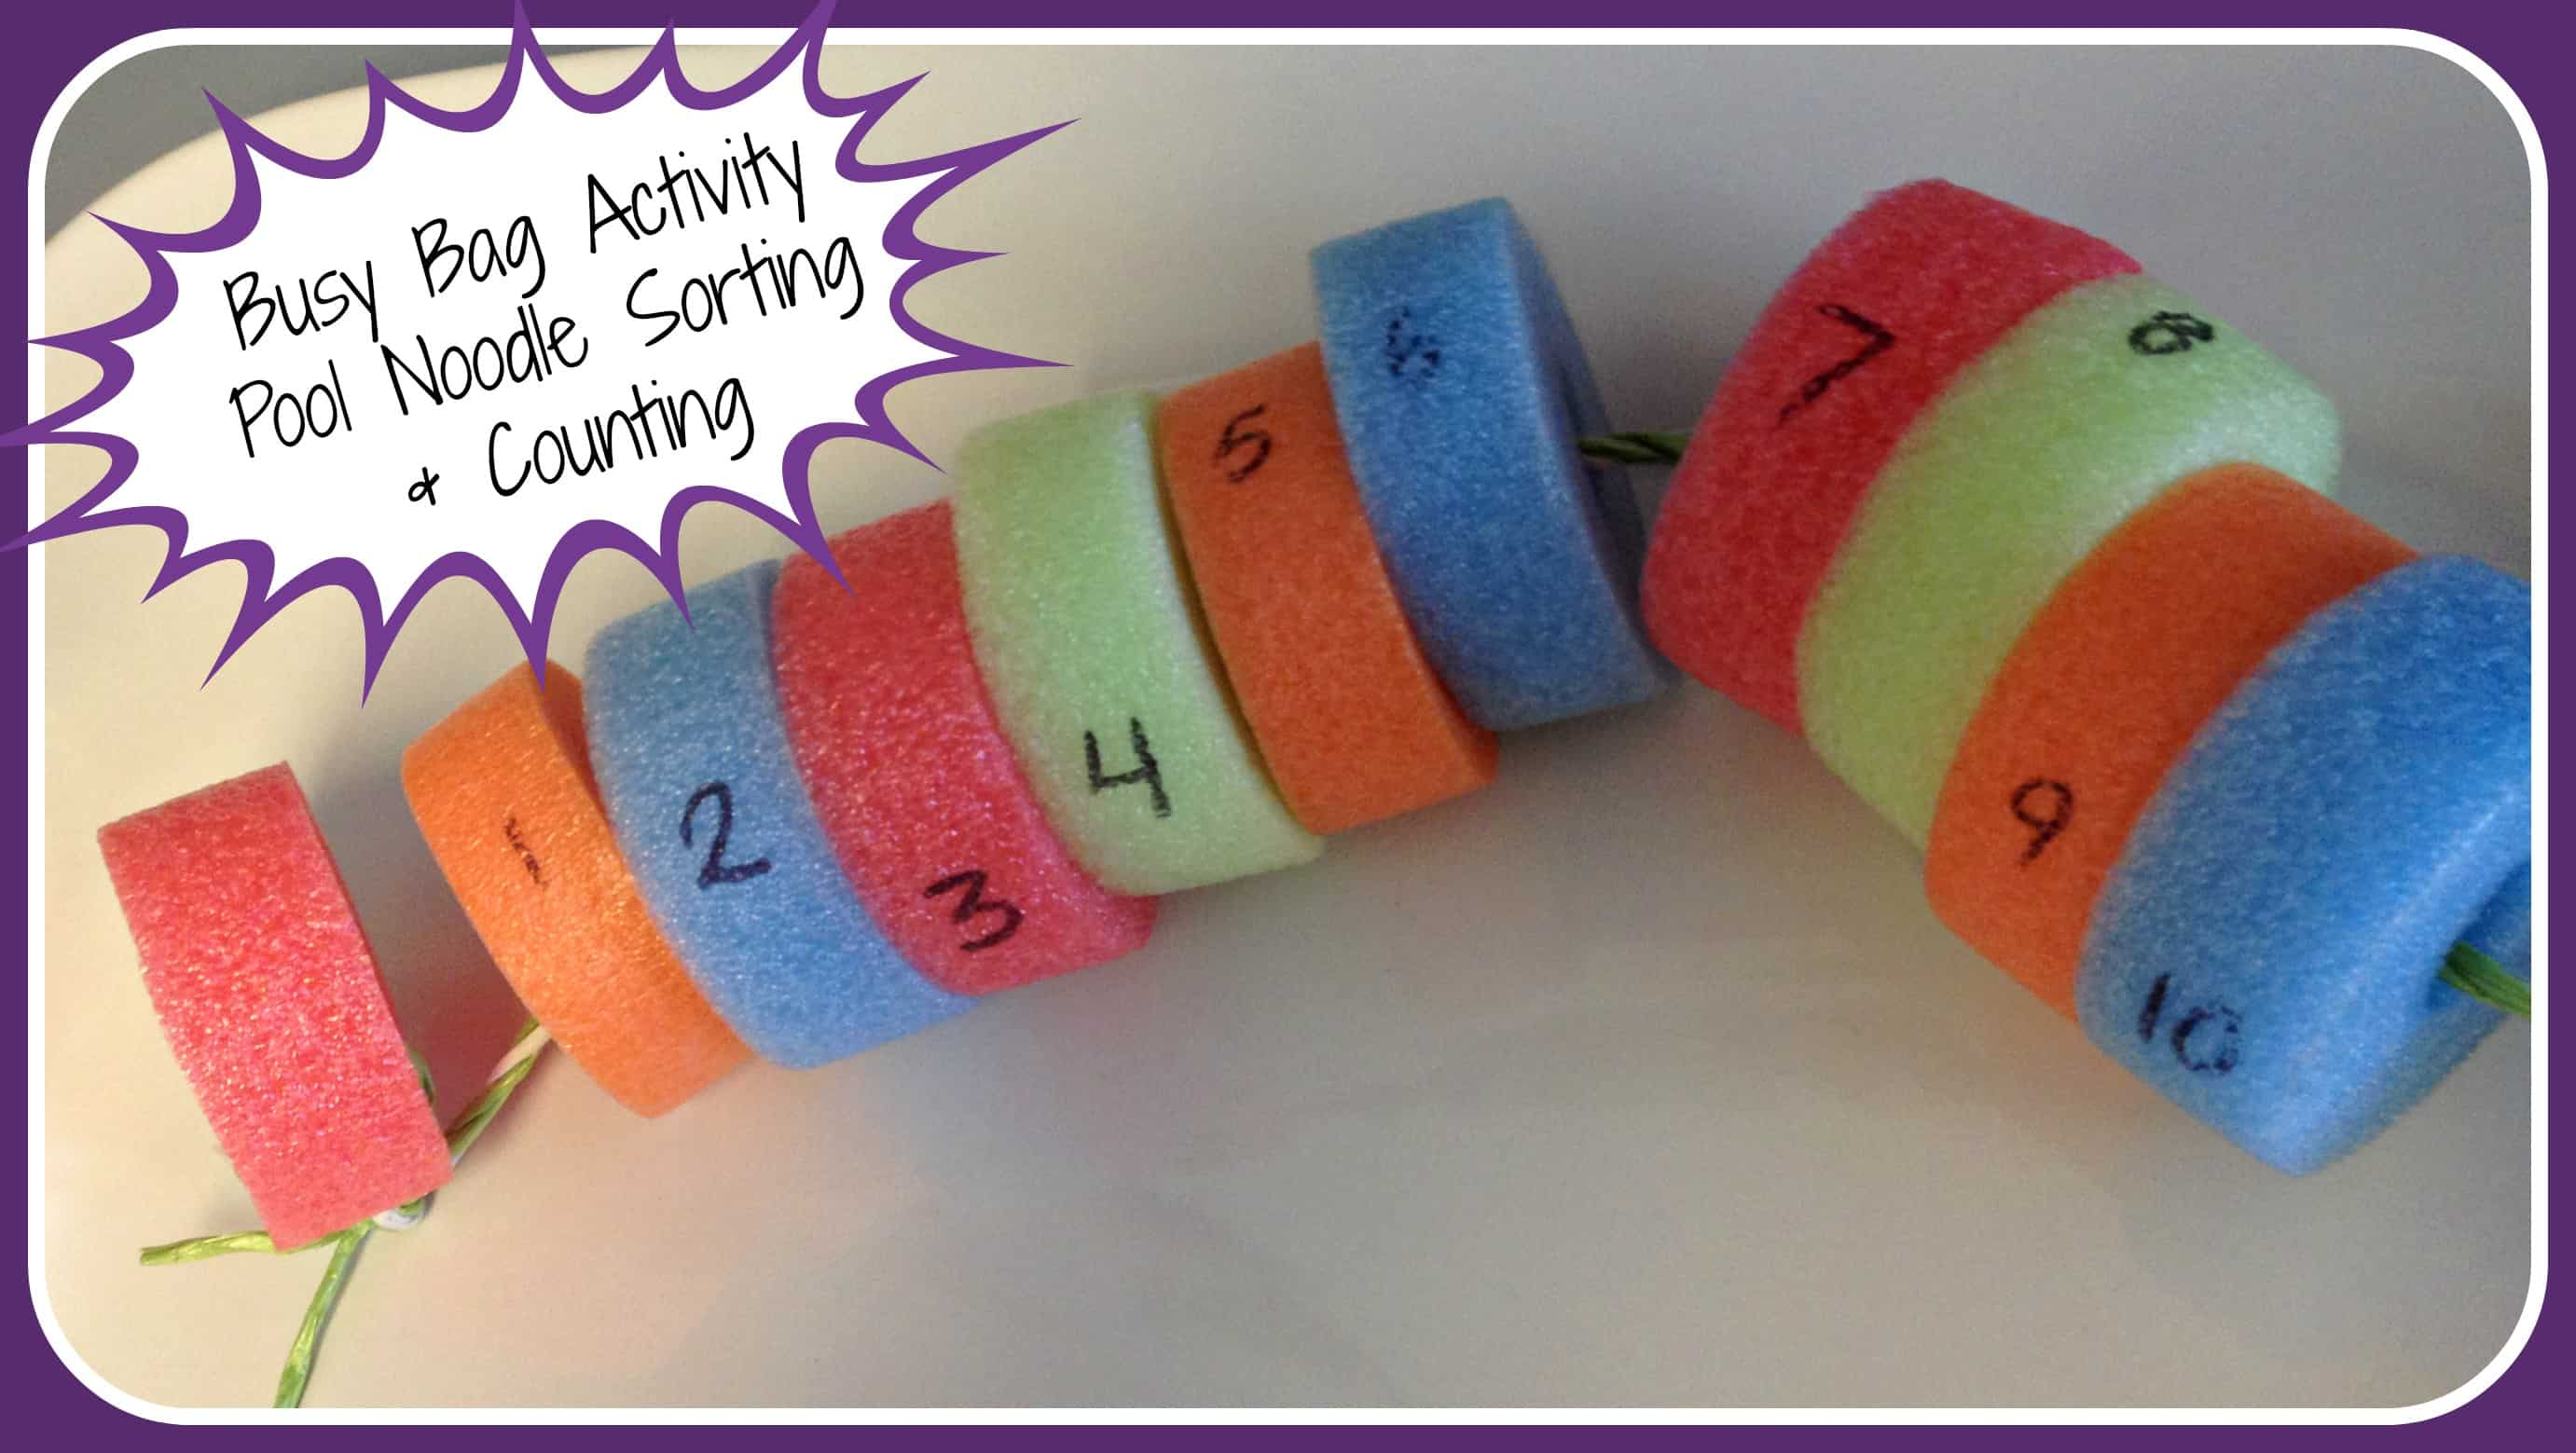 Busy Bag Activity - Pool Noodle Sorting & Counting